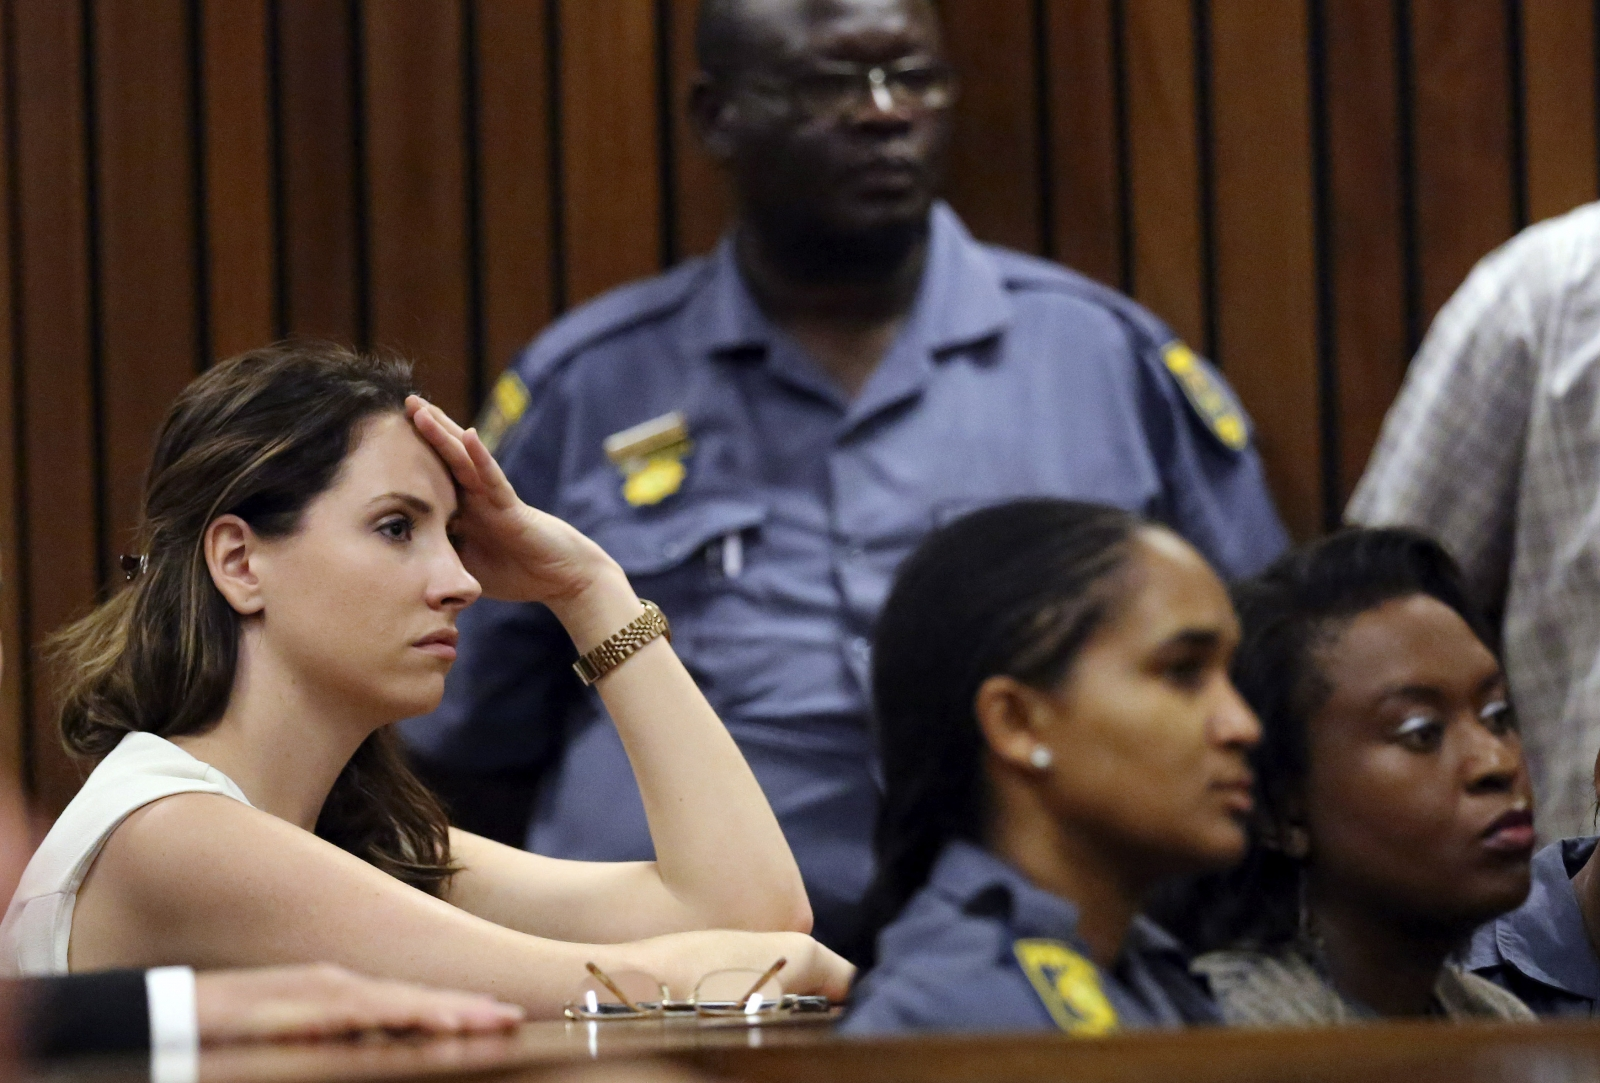 Oscar Pistorius Murder Trial Parole Paralympics together with Oscar Pistorius Cowers Dock Forensic Expert Describes Gunshot Injury Reeva Steenk s Arm in addition Rhodes Uproar List Alleged Rapists Released together with Oscar Pistorius Hold Private Memorial Service Dead Girlfriend Reeva Steenk likewise Index. on oscar pistorius charges